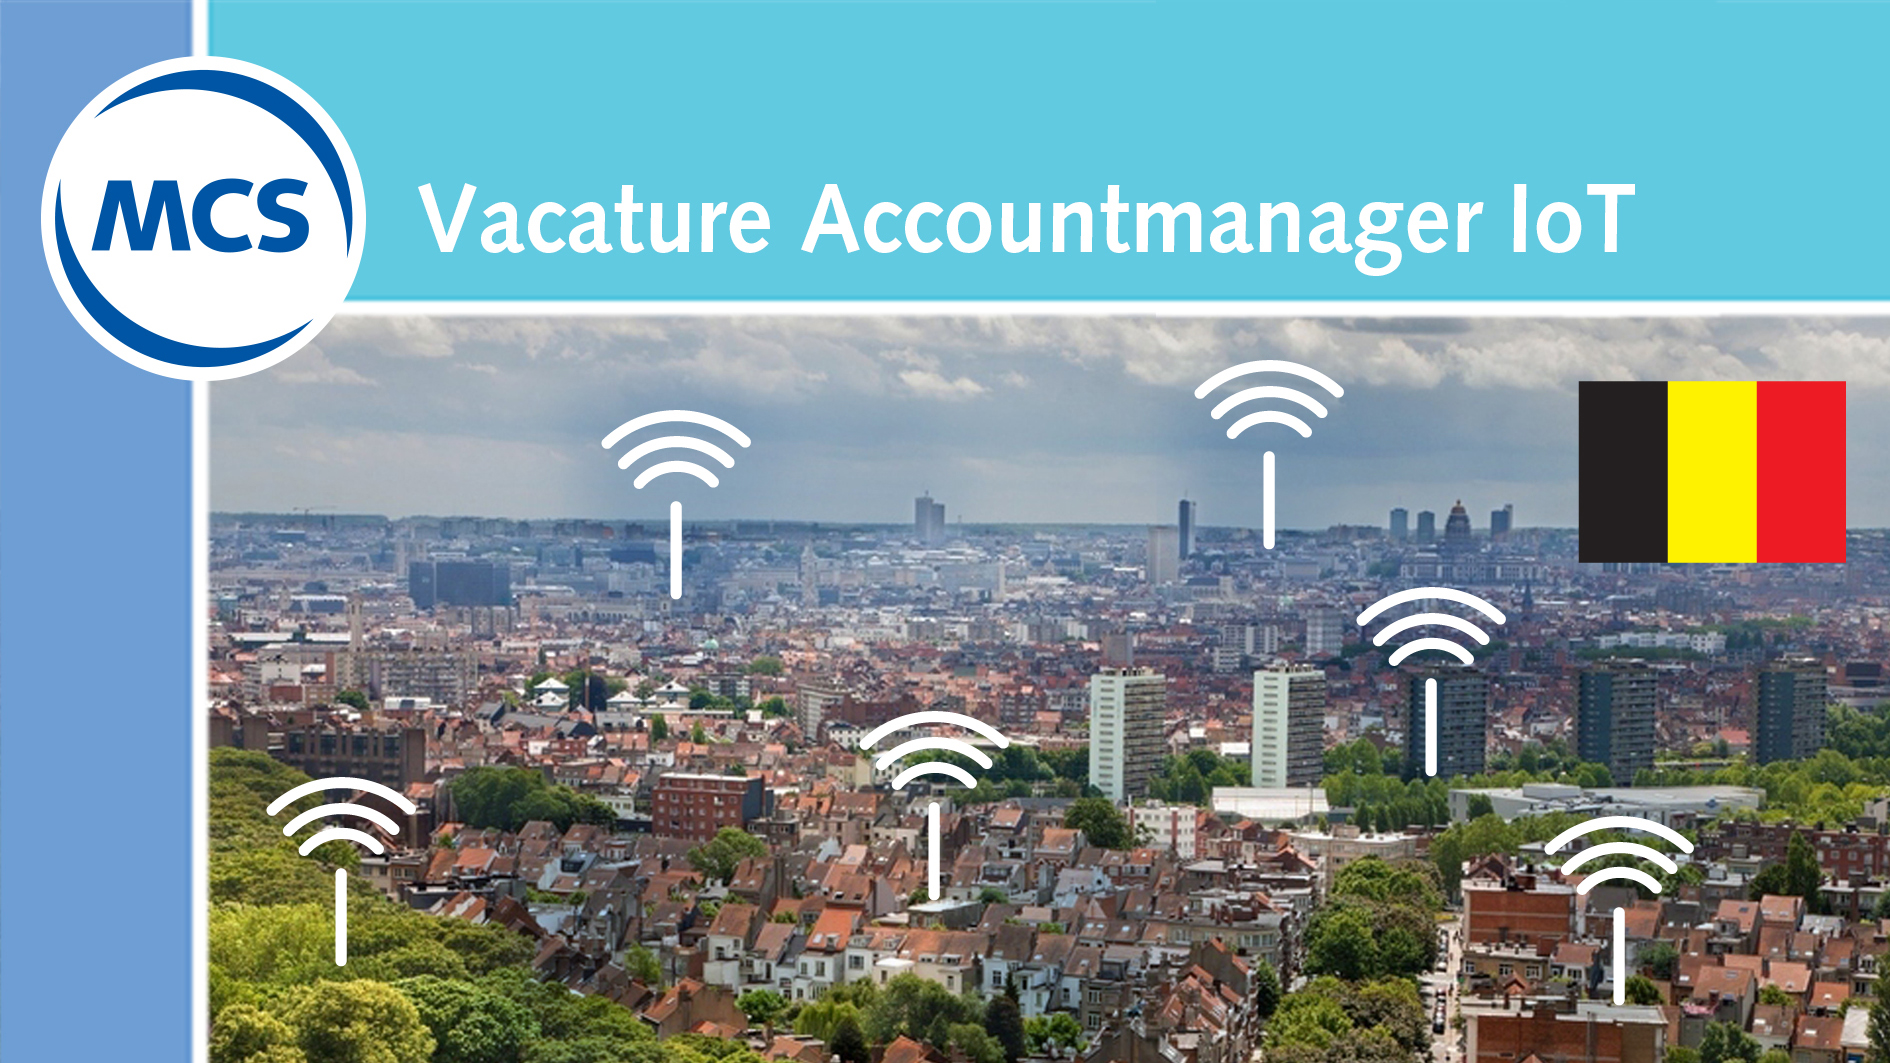 Vacature Accountmanager IoT   Pushing the limits of communication technology   MCS